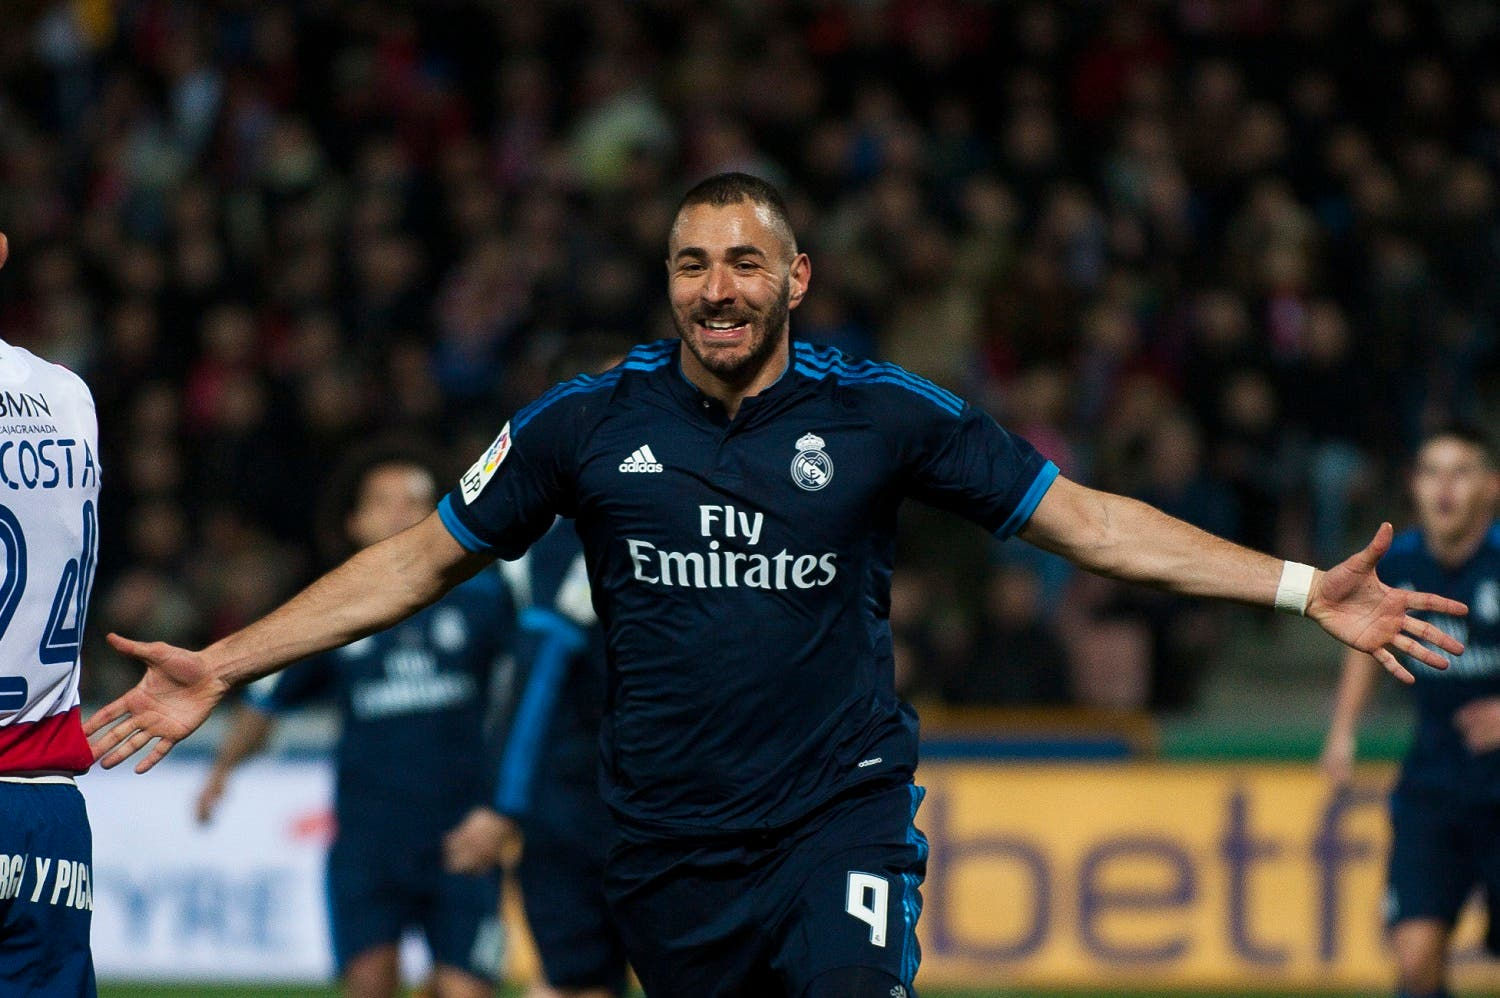 Real Madrid 's Karim Benzema celebrates his goal during a Spanish La Liga soccer match between Granada and Real Madrid at Los Carmenes stadium in Granada, Spain, Sunday, Feb. 7, 2016. (AP)